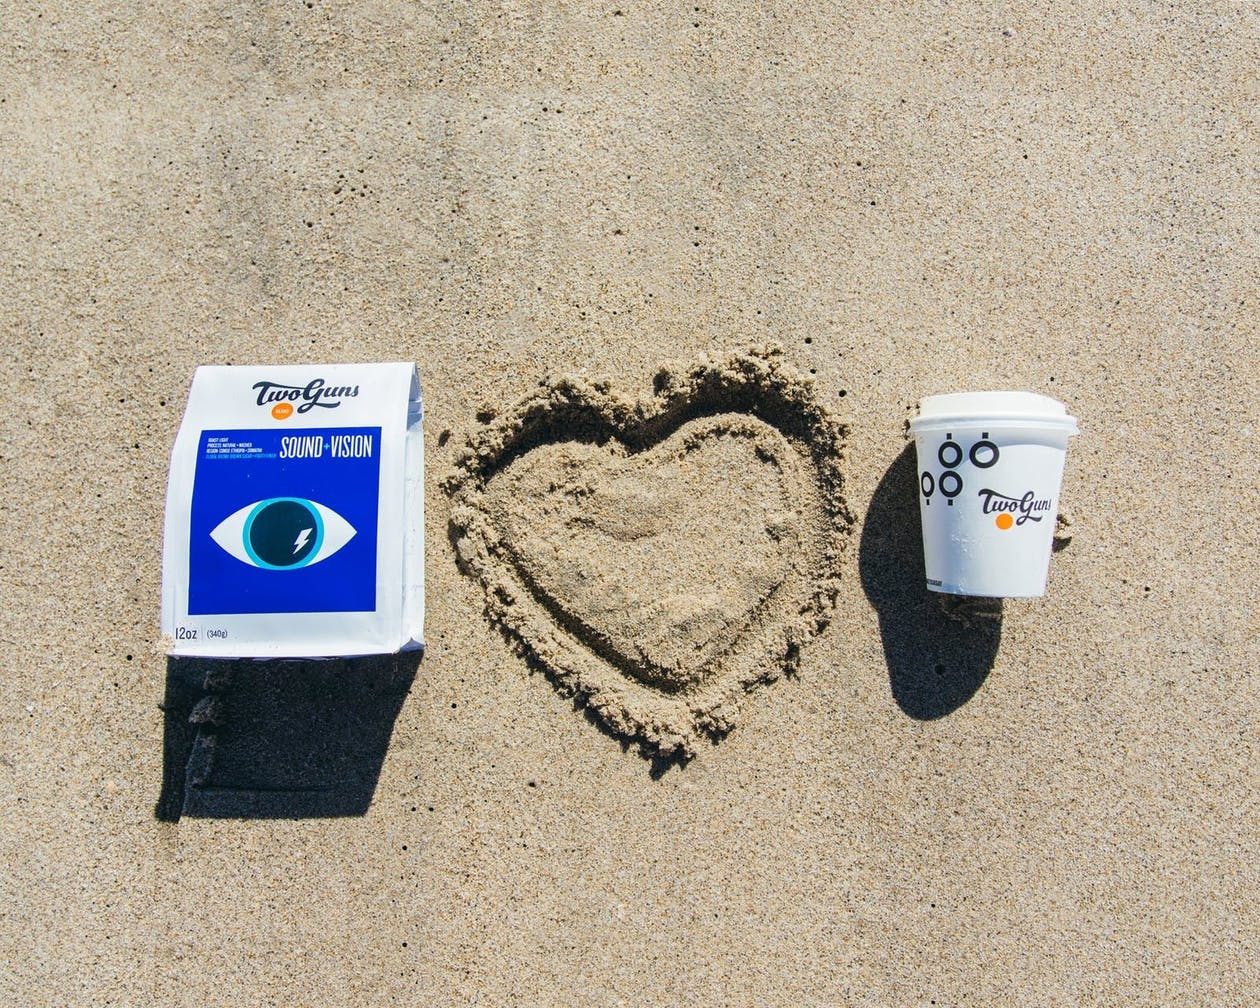 a coffee cup and bag of coffee on a sandy beach